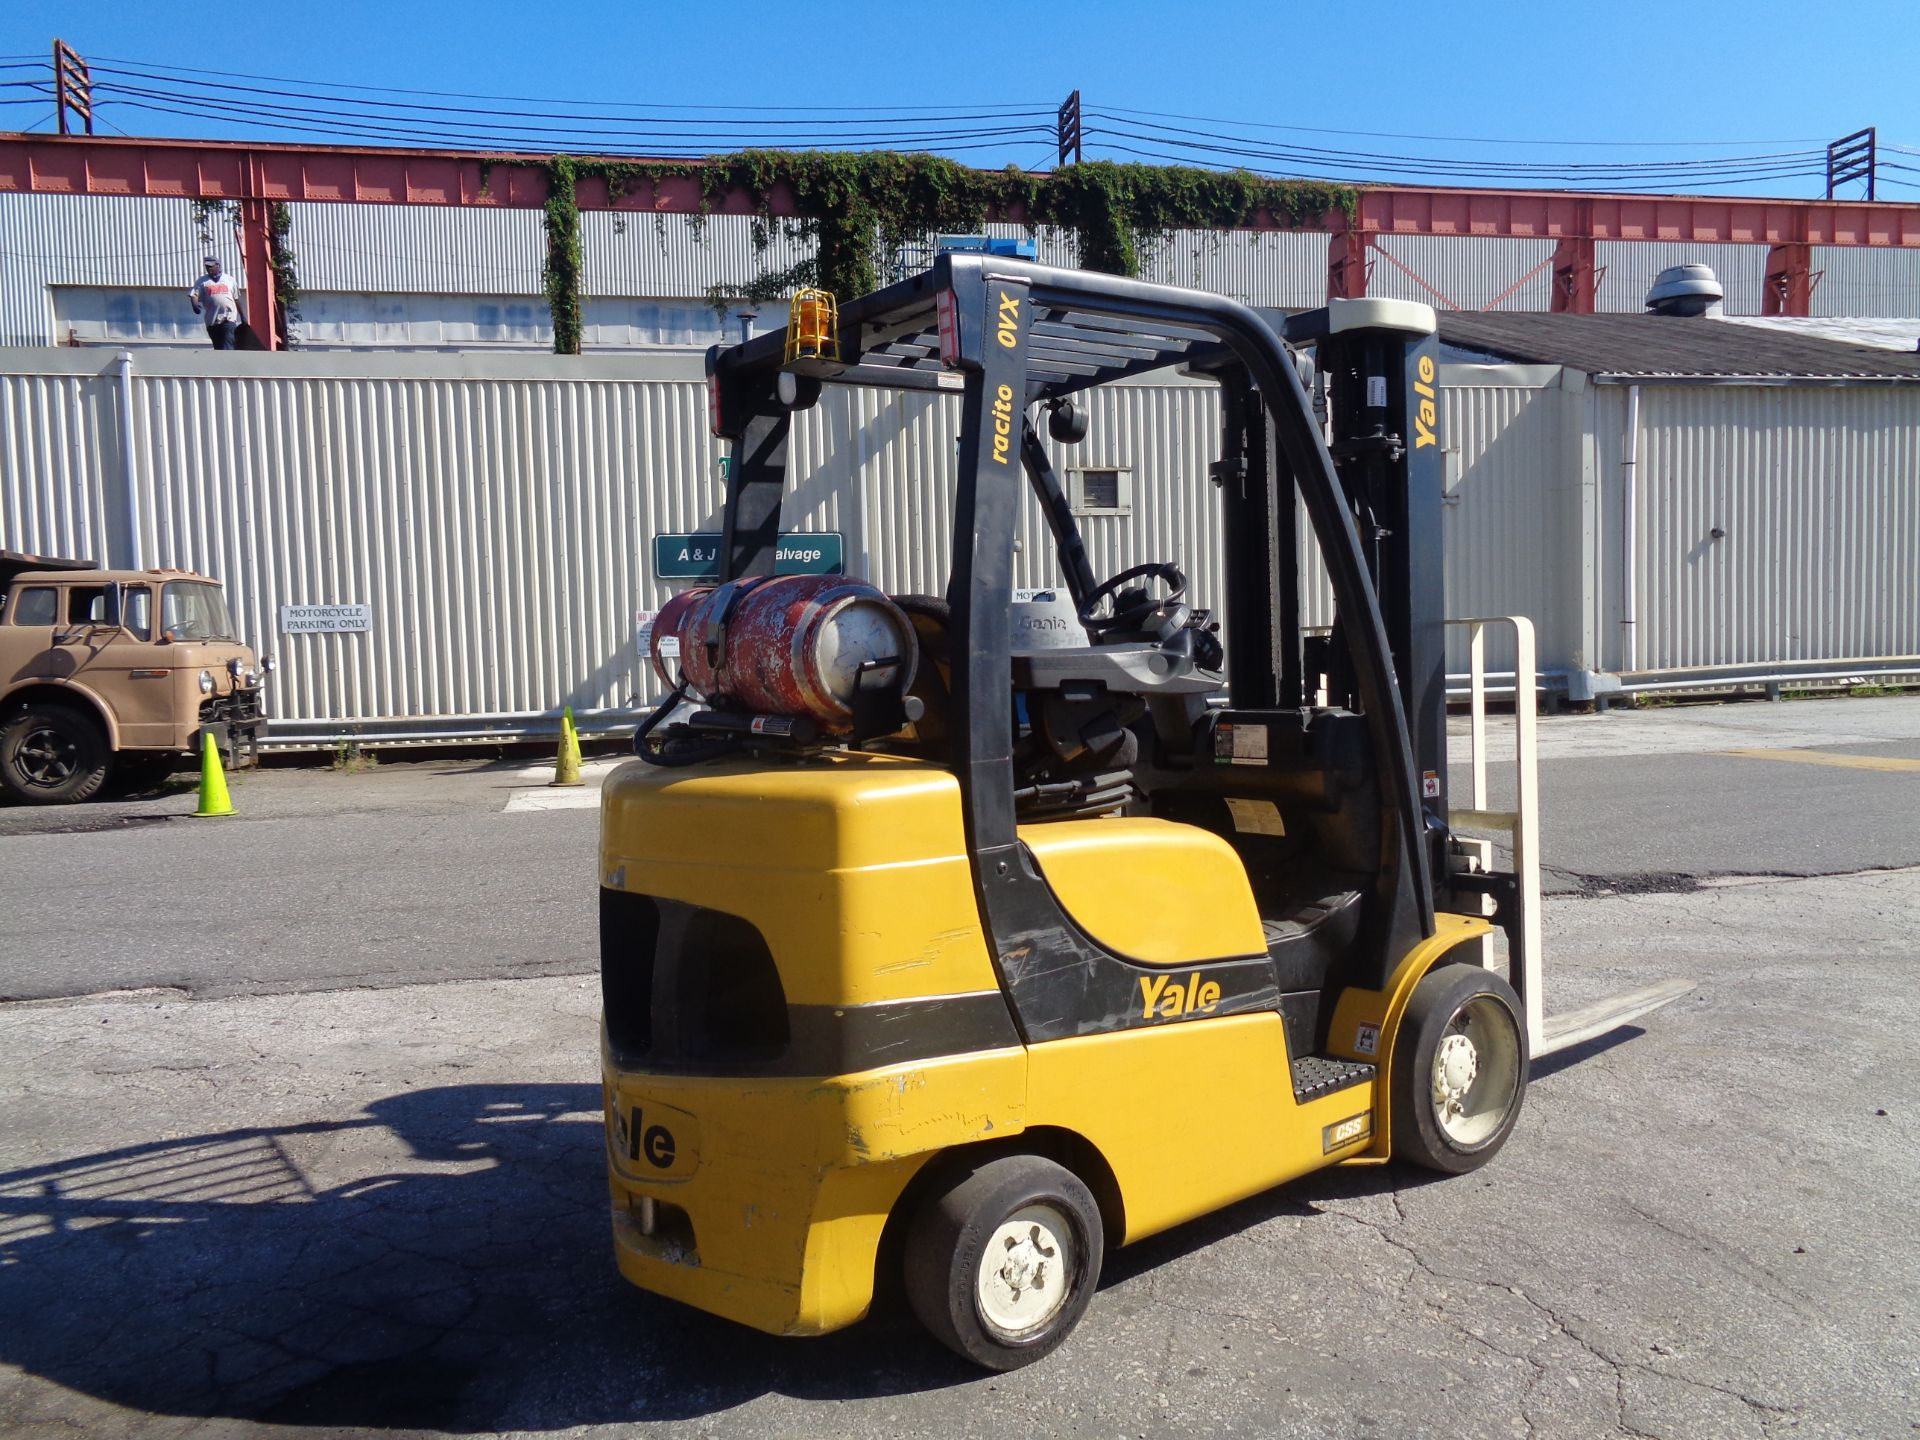 2014 Yale GLC070VXNGSE088 7,000 lbs Forklift - Image 4 of 12